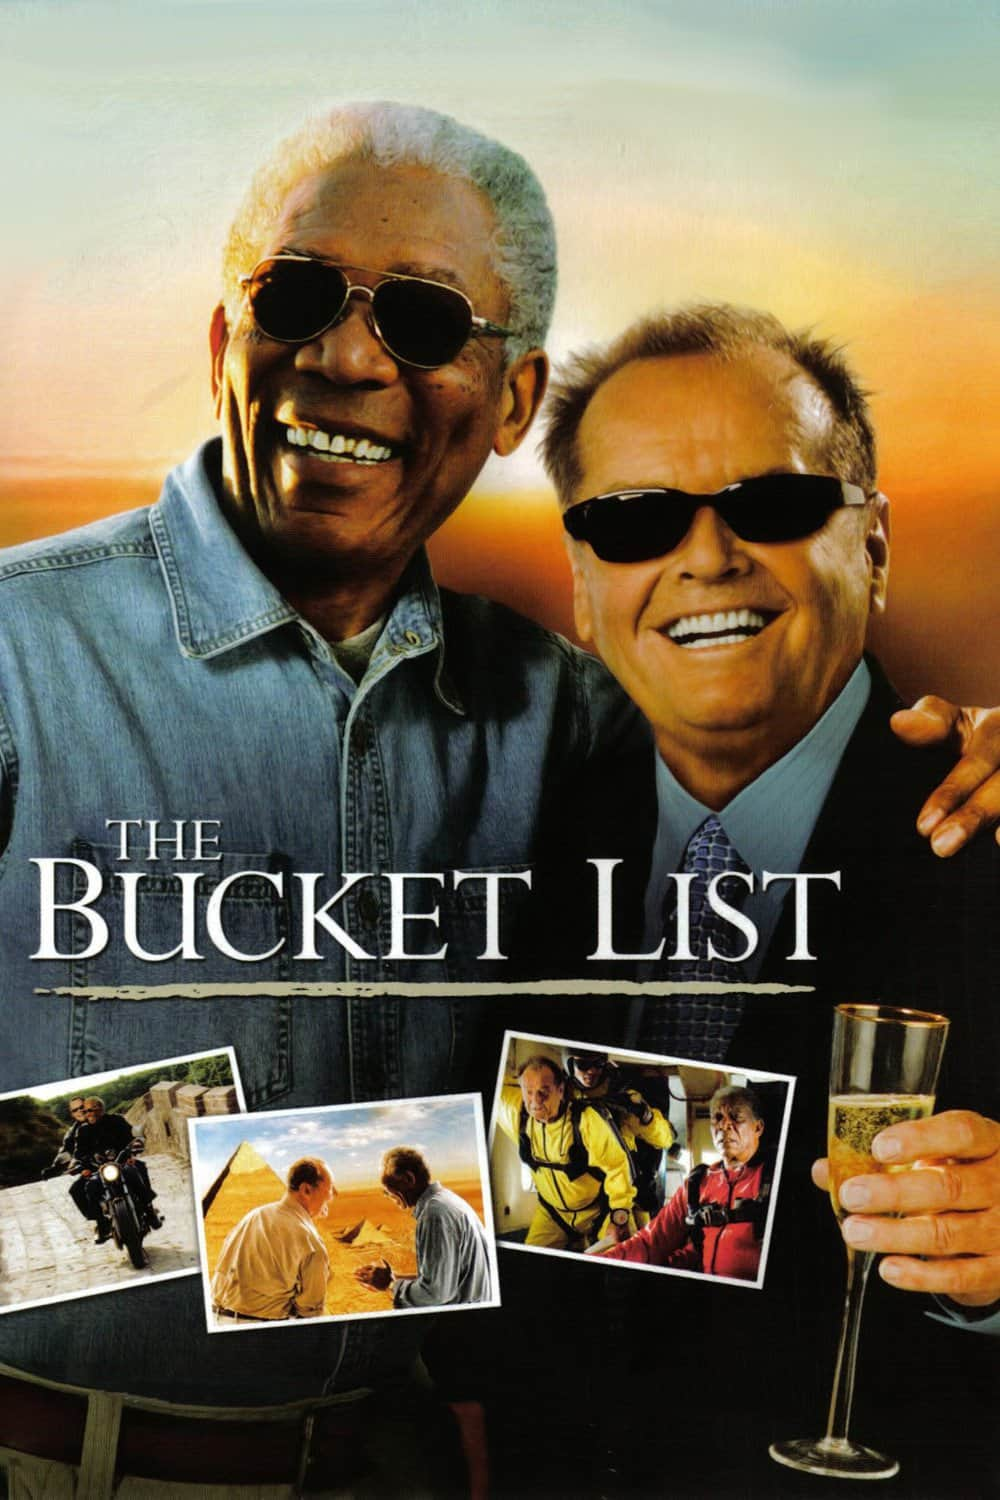 The Bucket List, 2007